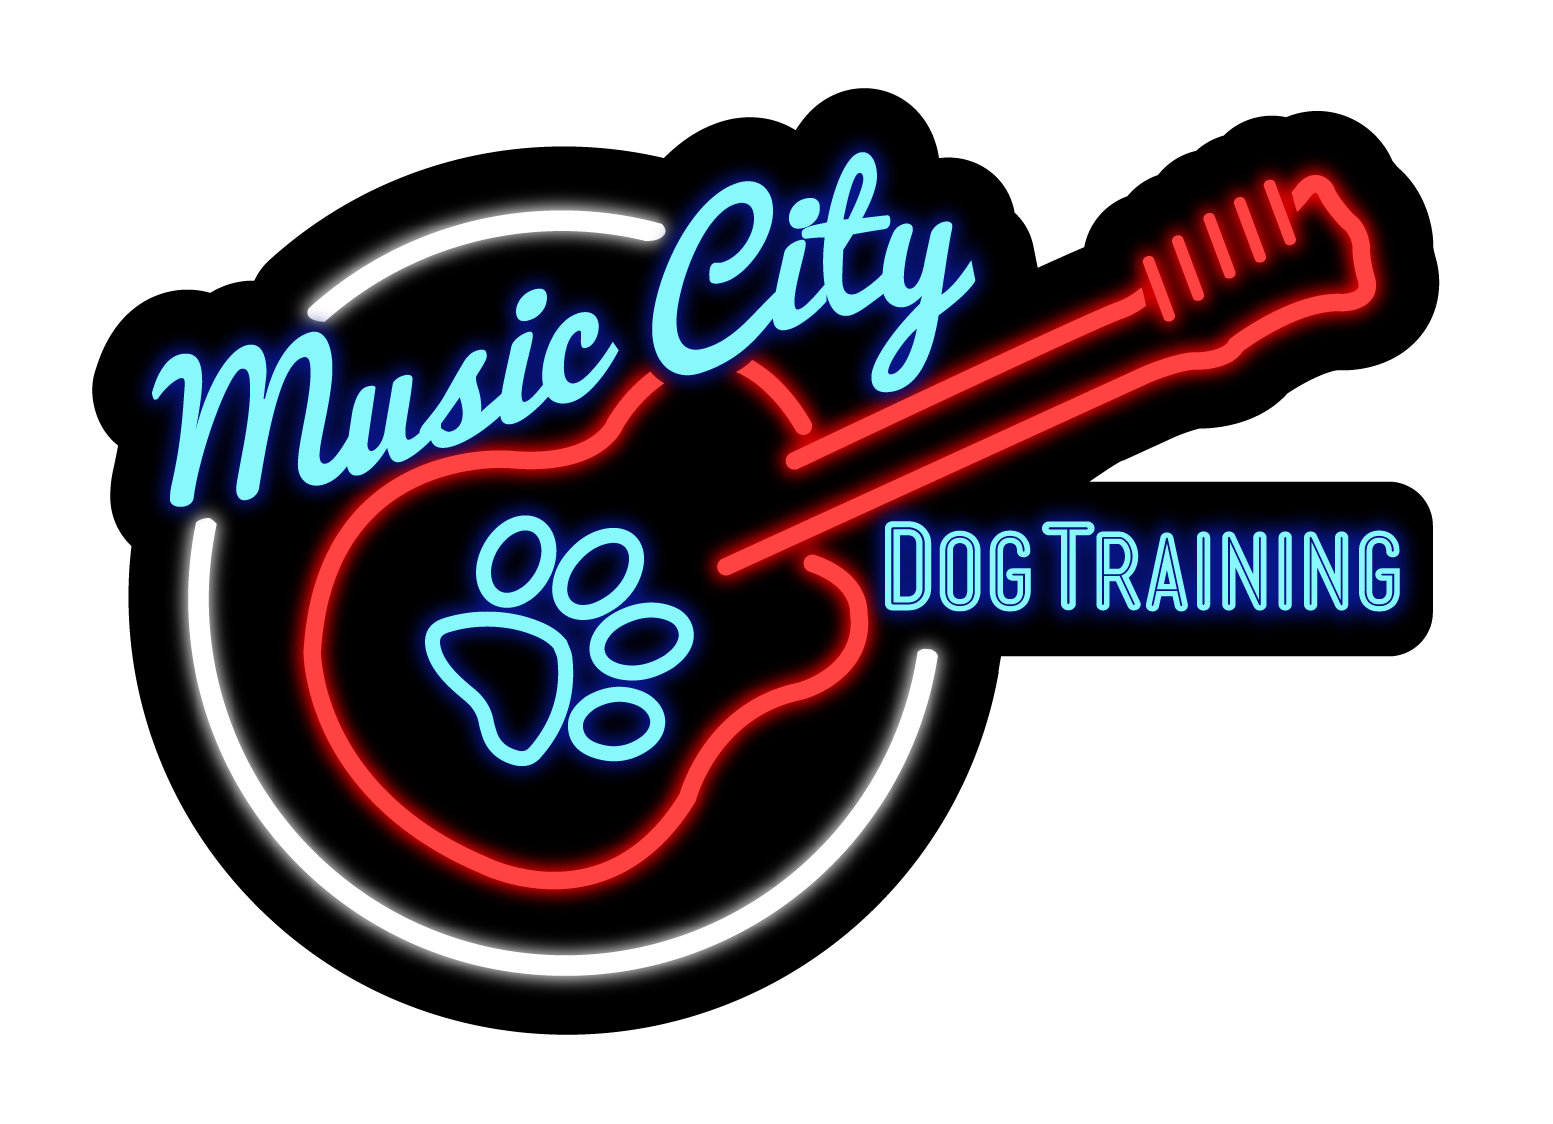 Music City Dog Training